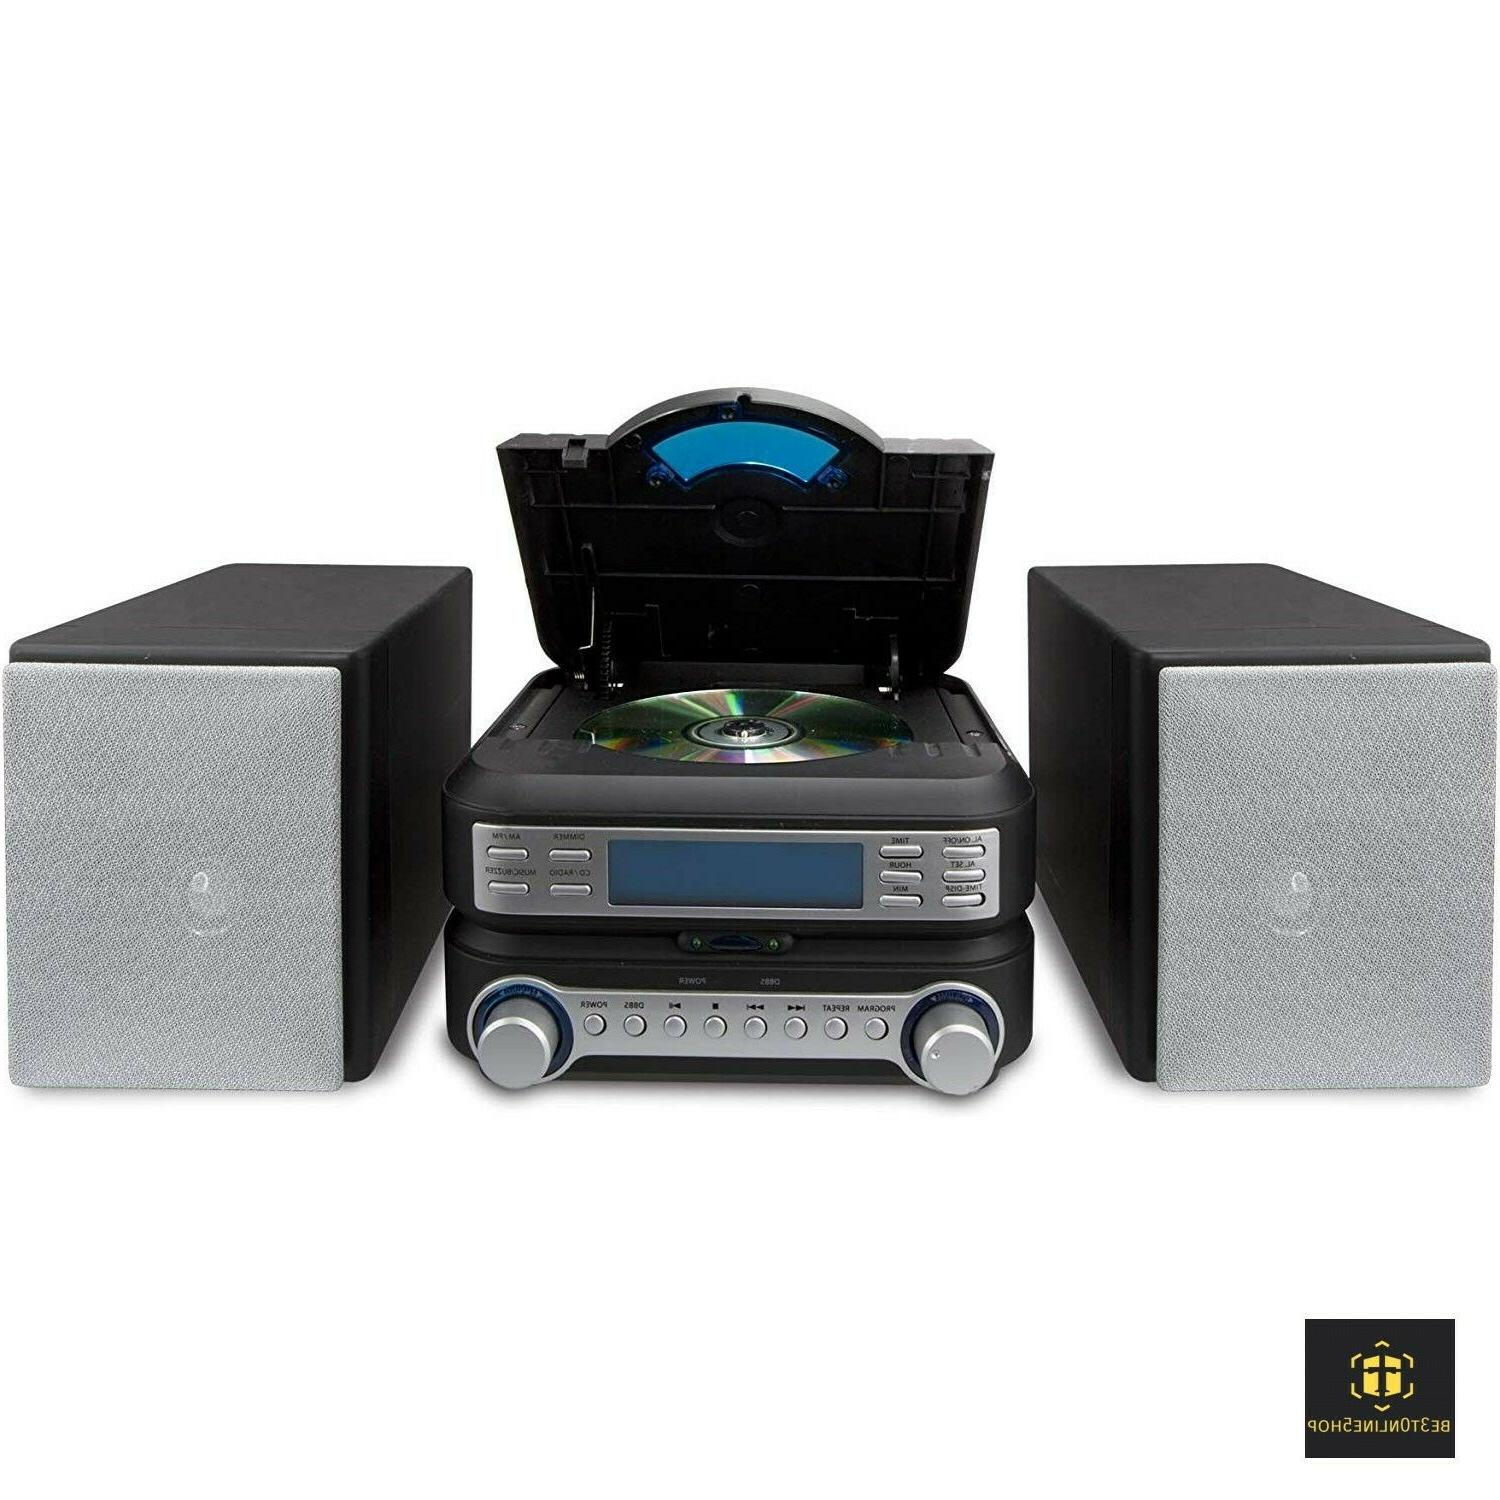 bookshelf cd player stereo system home am